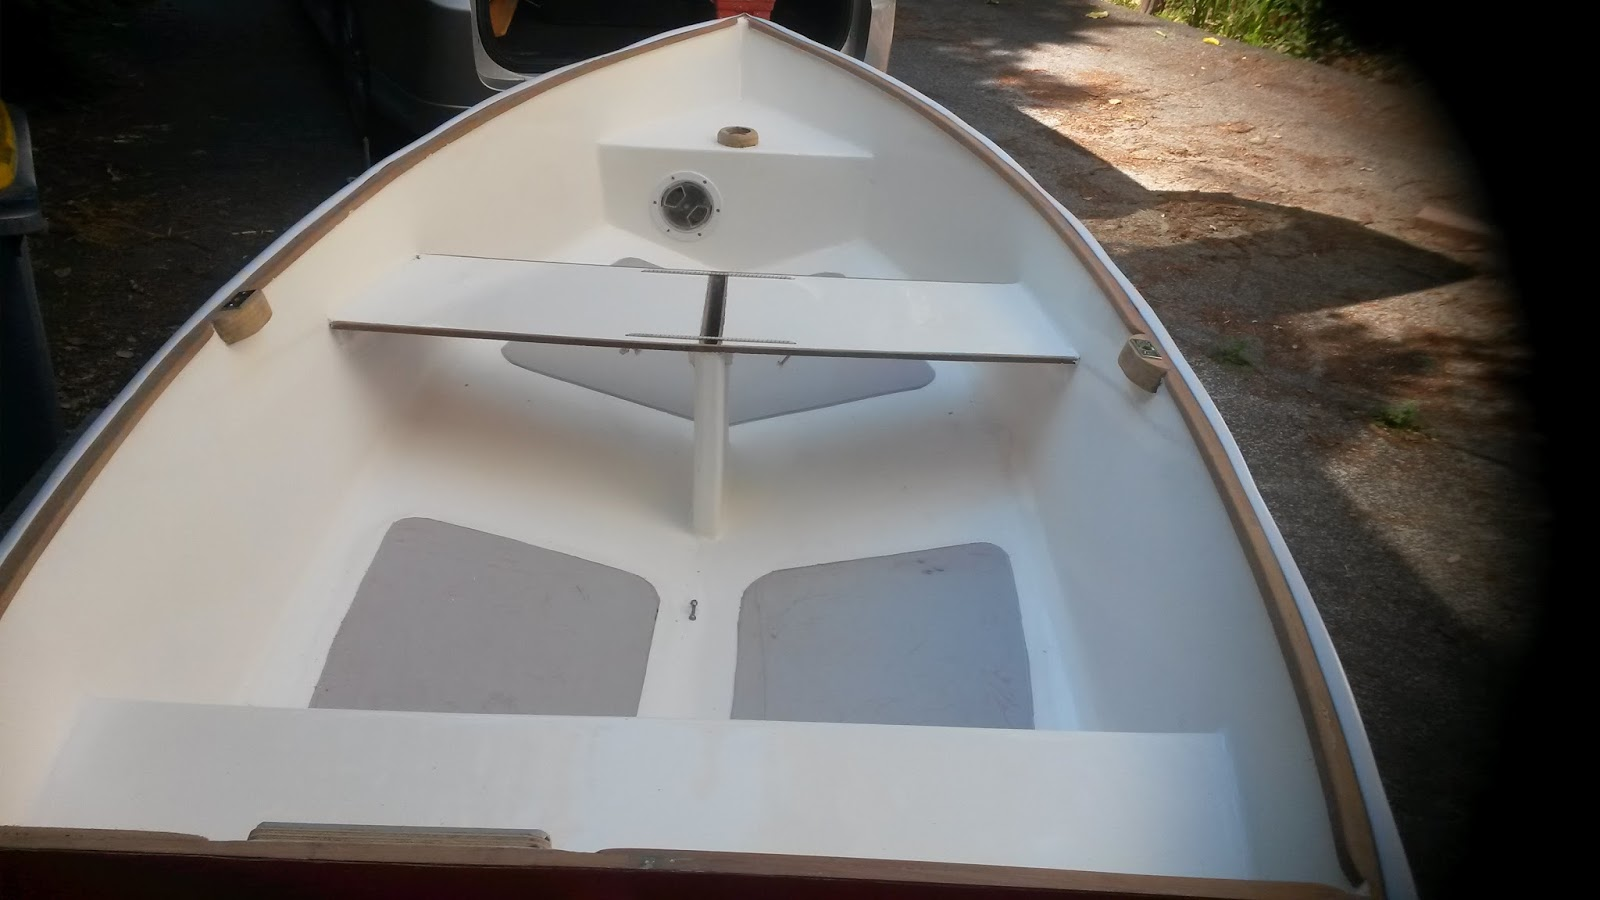 Interior view of finished boat, with wood rubrail and rubber bumper.